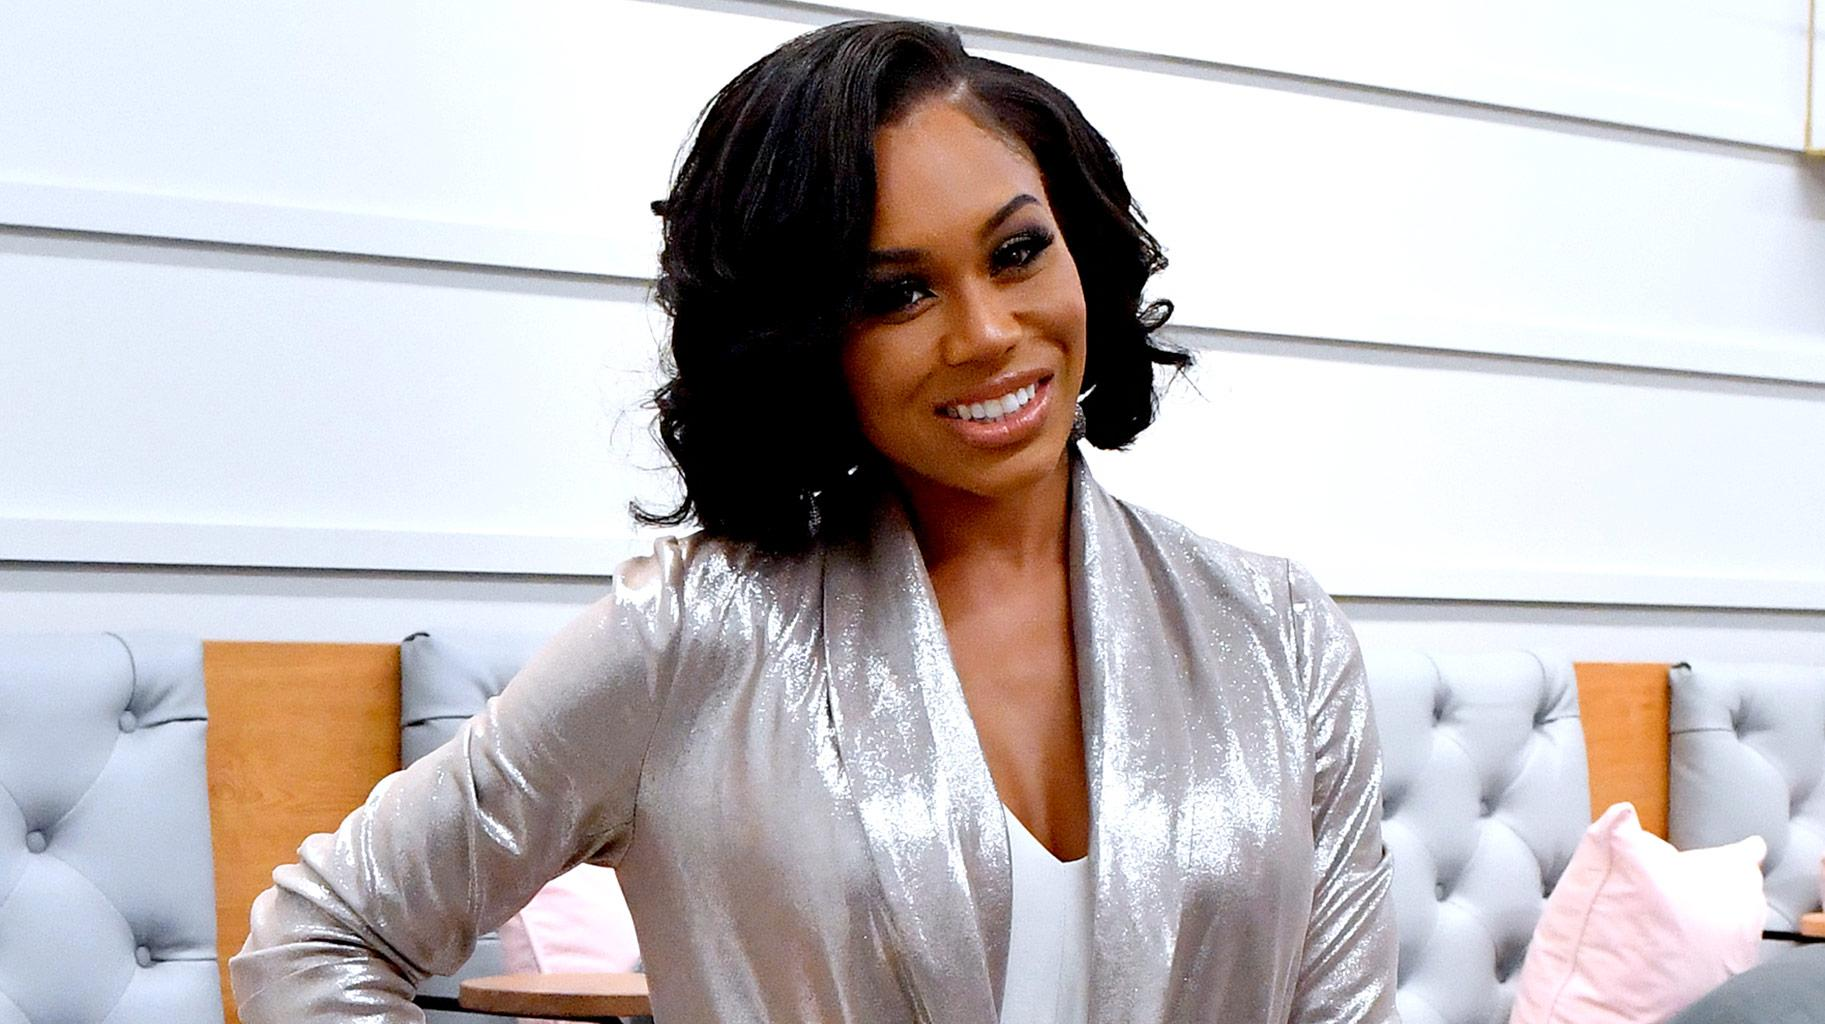 Monique Samuels Slams Her Co-Stars For Making Fight With Candiace Dillard About Themselves